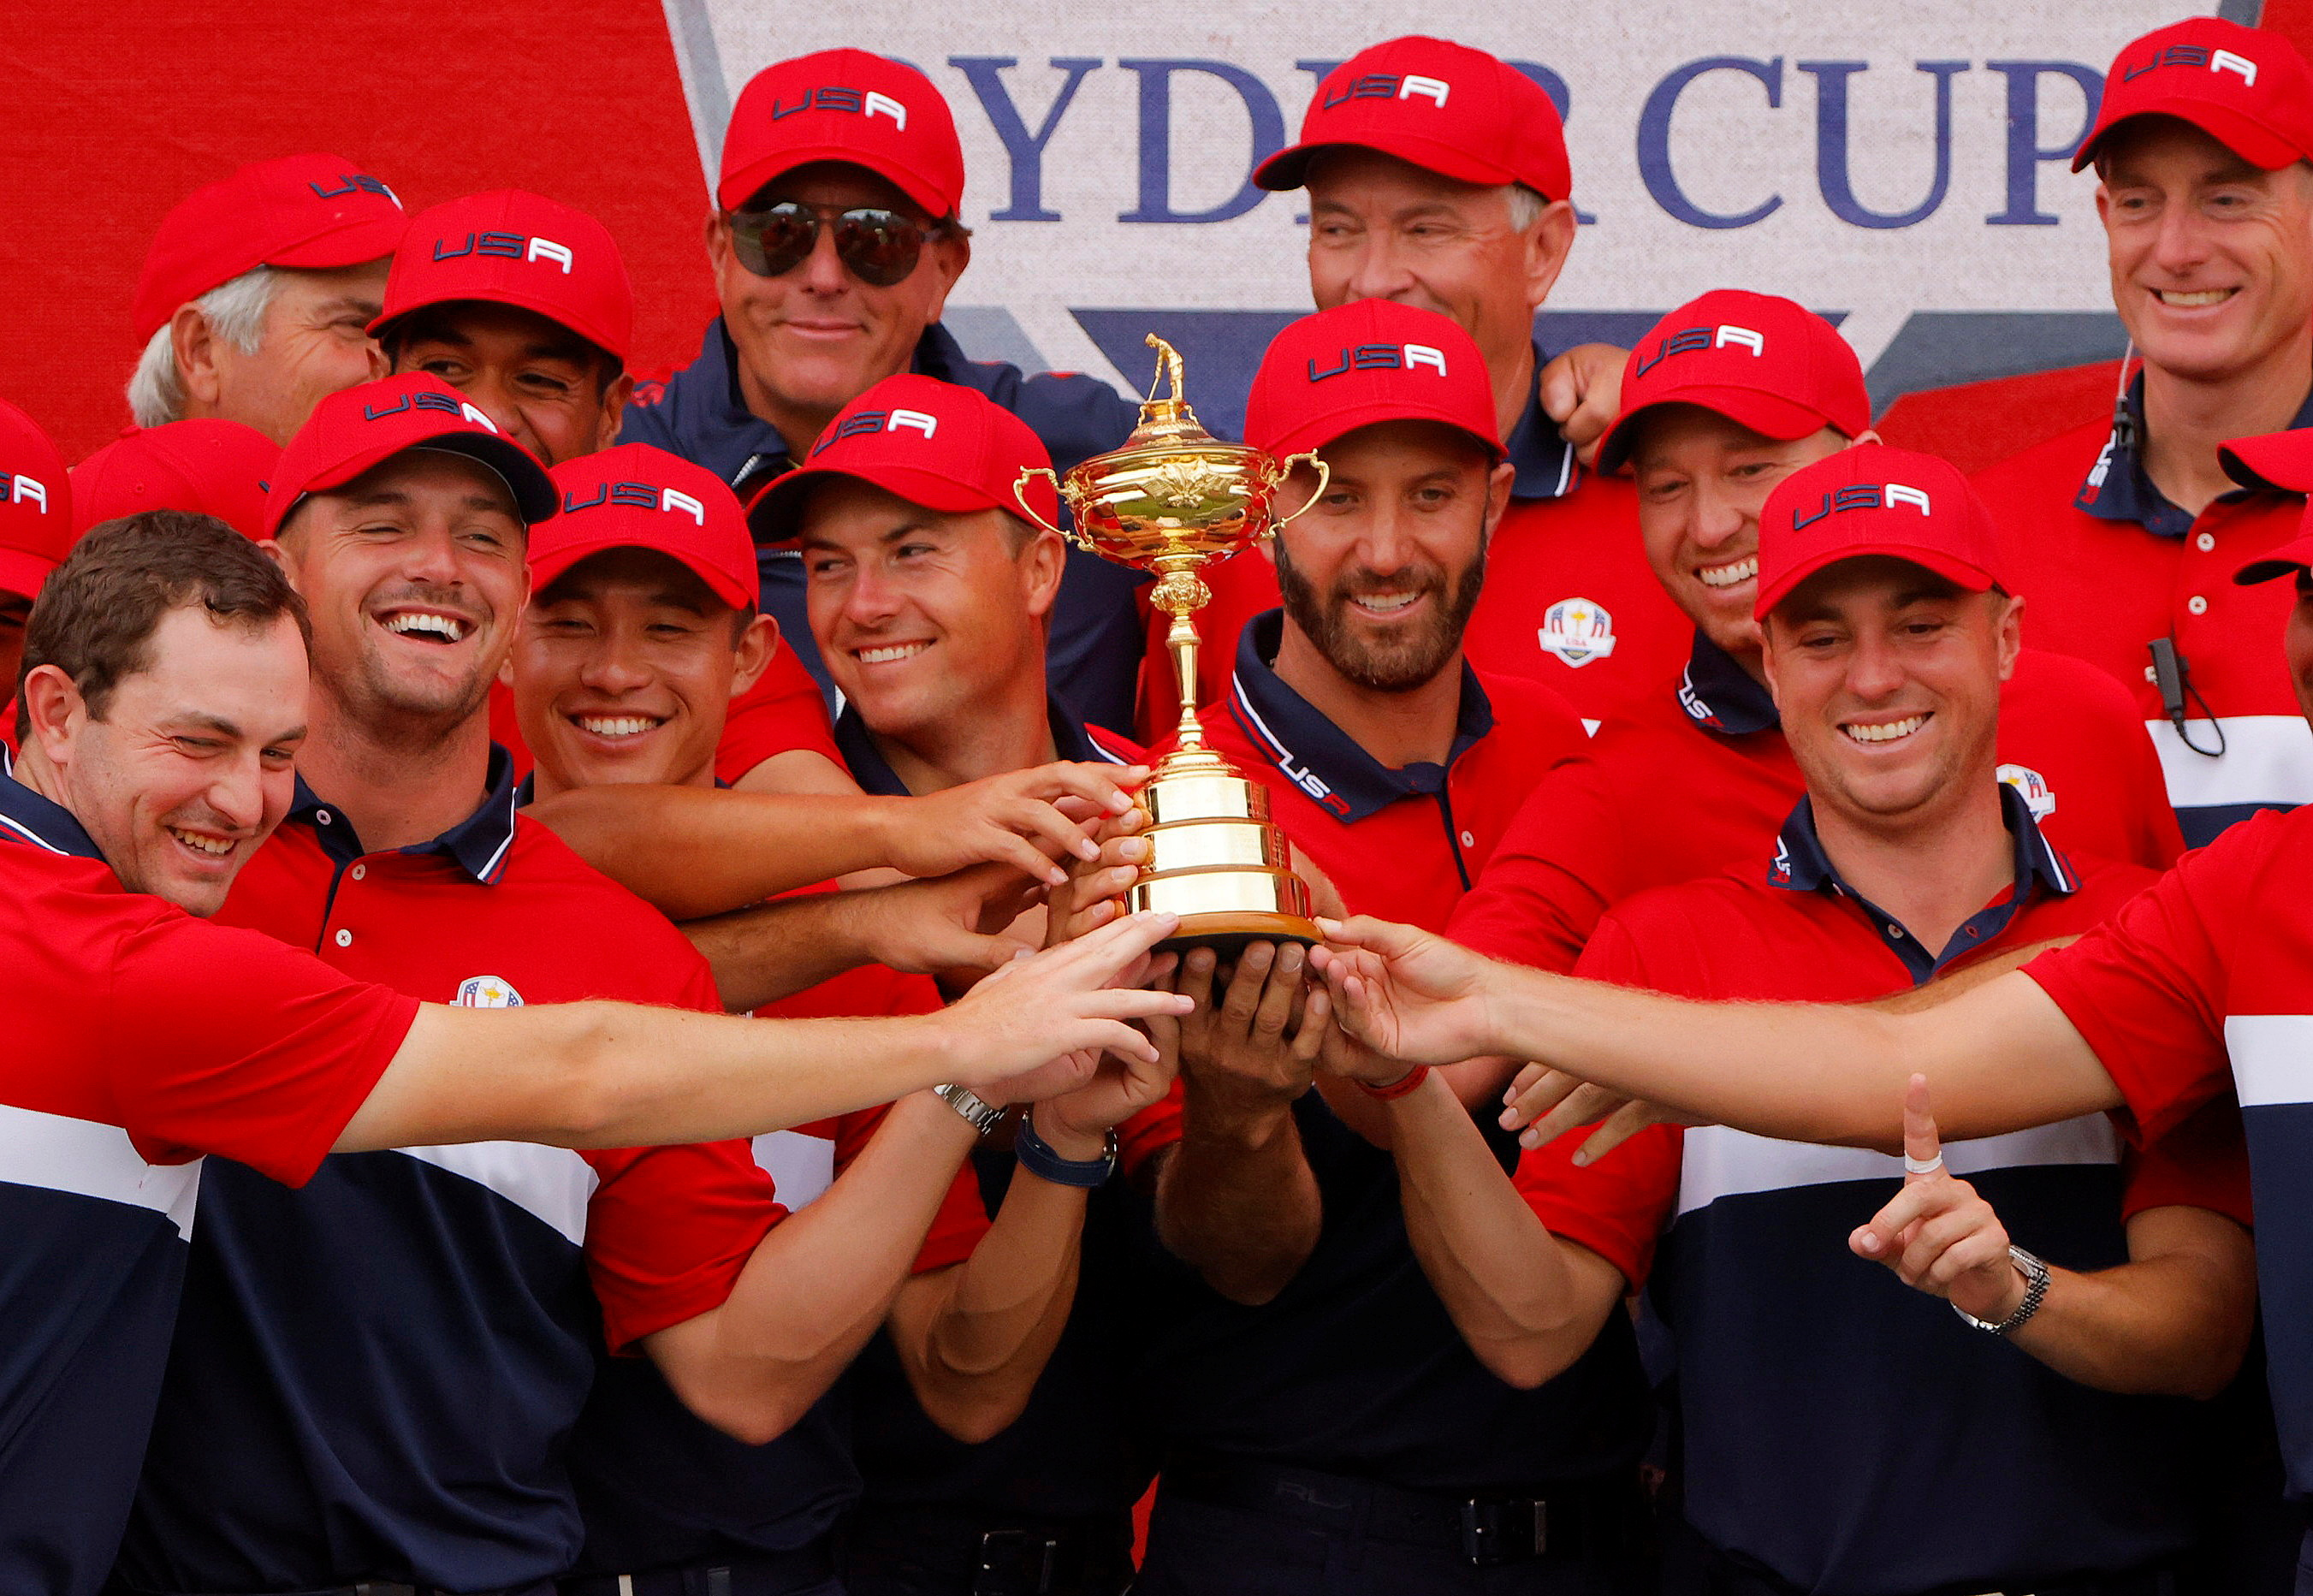 Golf - The 2020 Ryder Cup - Whistling Straits, Sheboygan, Wisconsin, U.S. - September 26, 2021 Team USA celebrate with the trophy after winning The Ryder Cup REUTERS/Brian Snyder